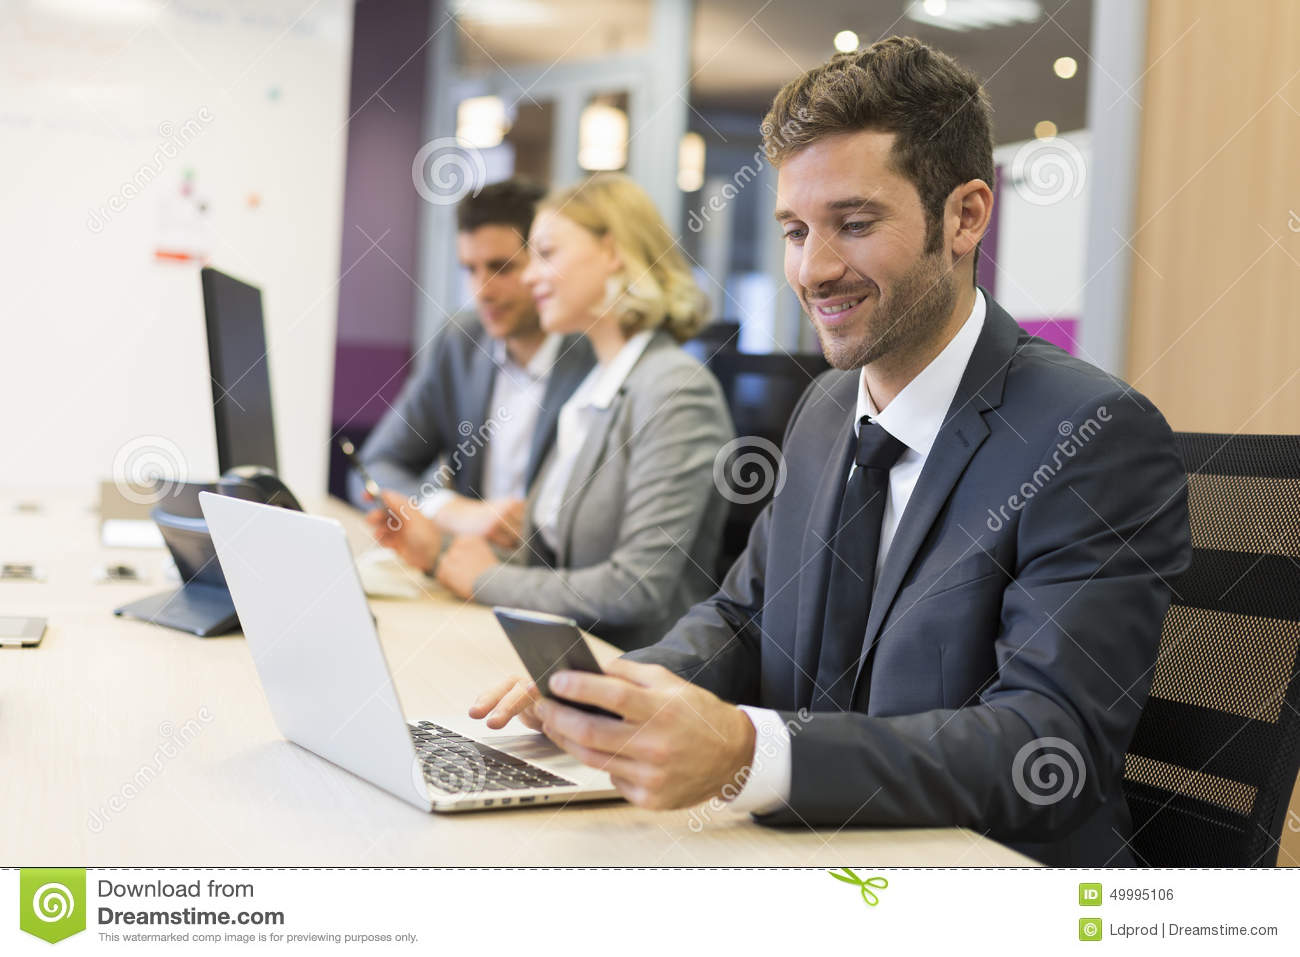 Businessman On Mobile Phone In Office, Sms, Message Stock Photo - Image of businesswoman, firm